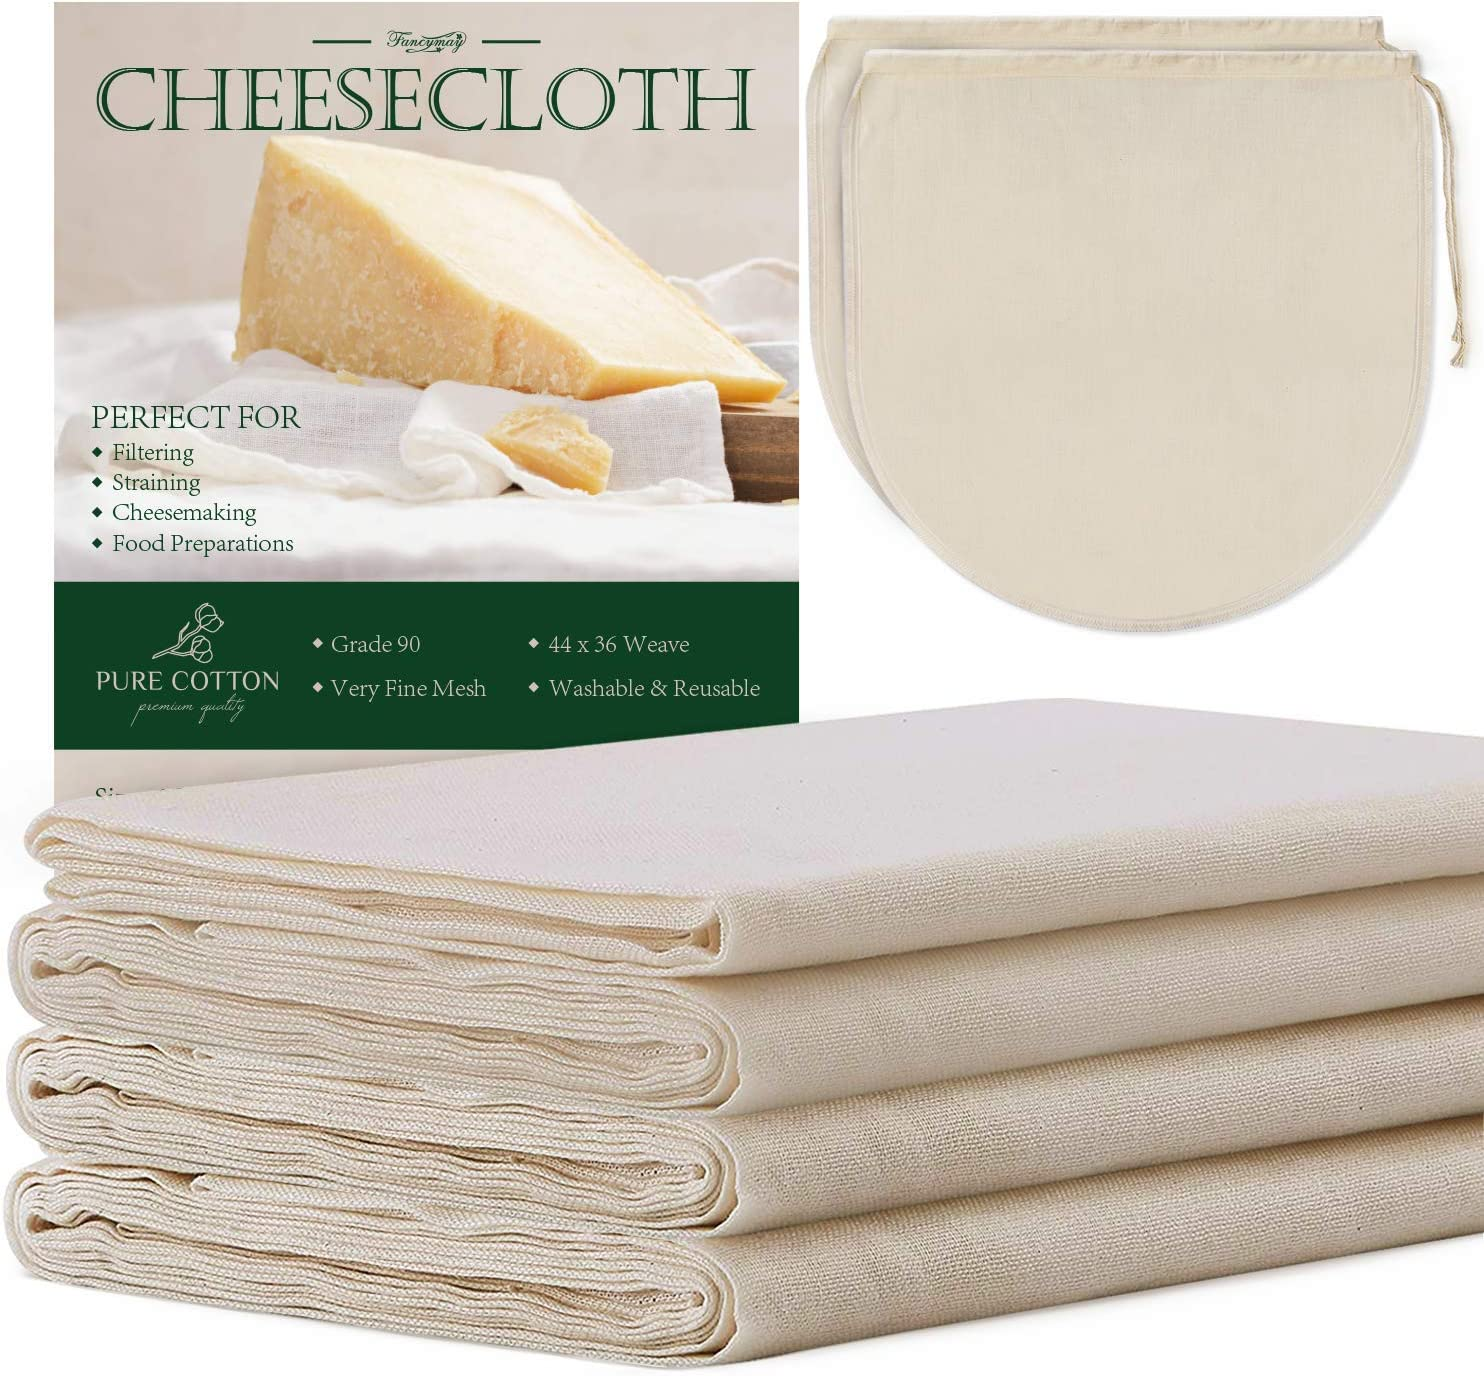 6 Yards Grade 90 Cheesecloth 54 Sq Feet + 2 Pack 12